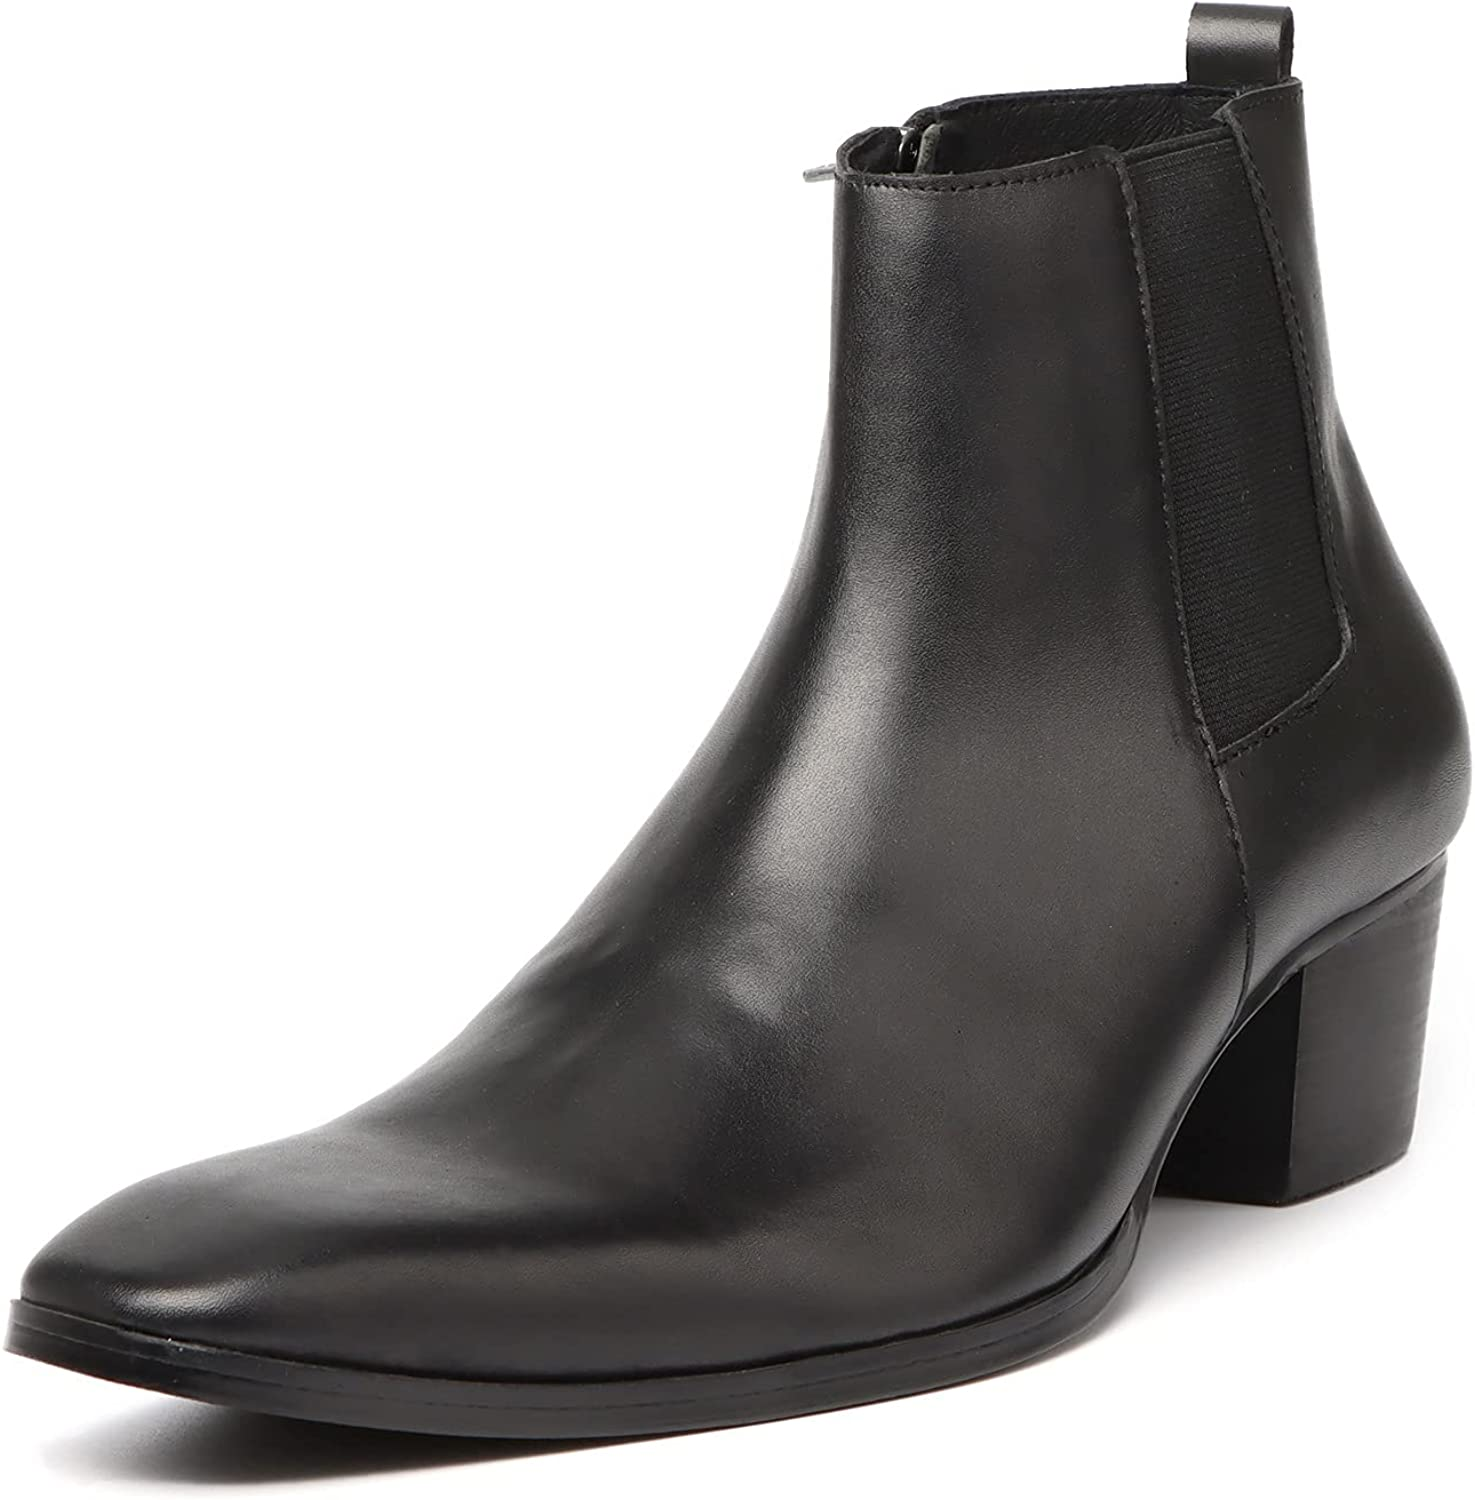 Rui Landed Chelsea Year-end annual account Boots for Men Special sale item Dress Shoes Ankle Top High Slip